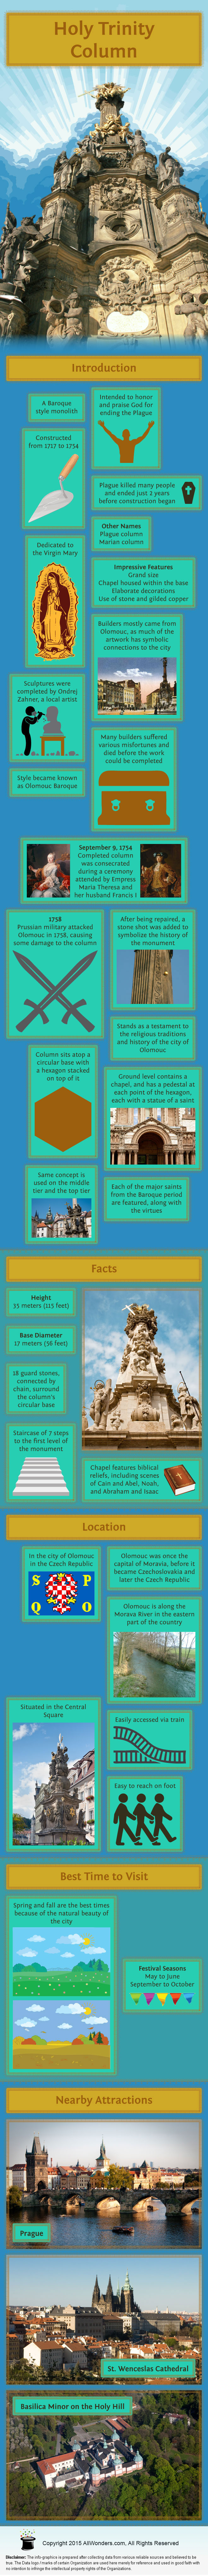 Holy Trinity Column - Facts & Infographic